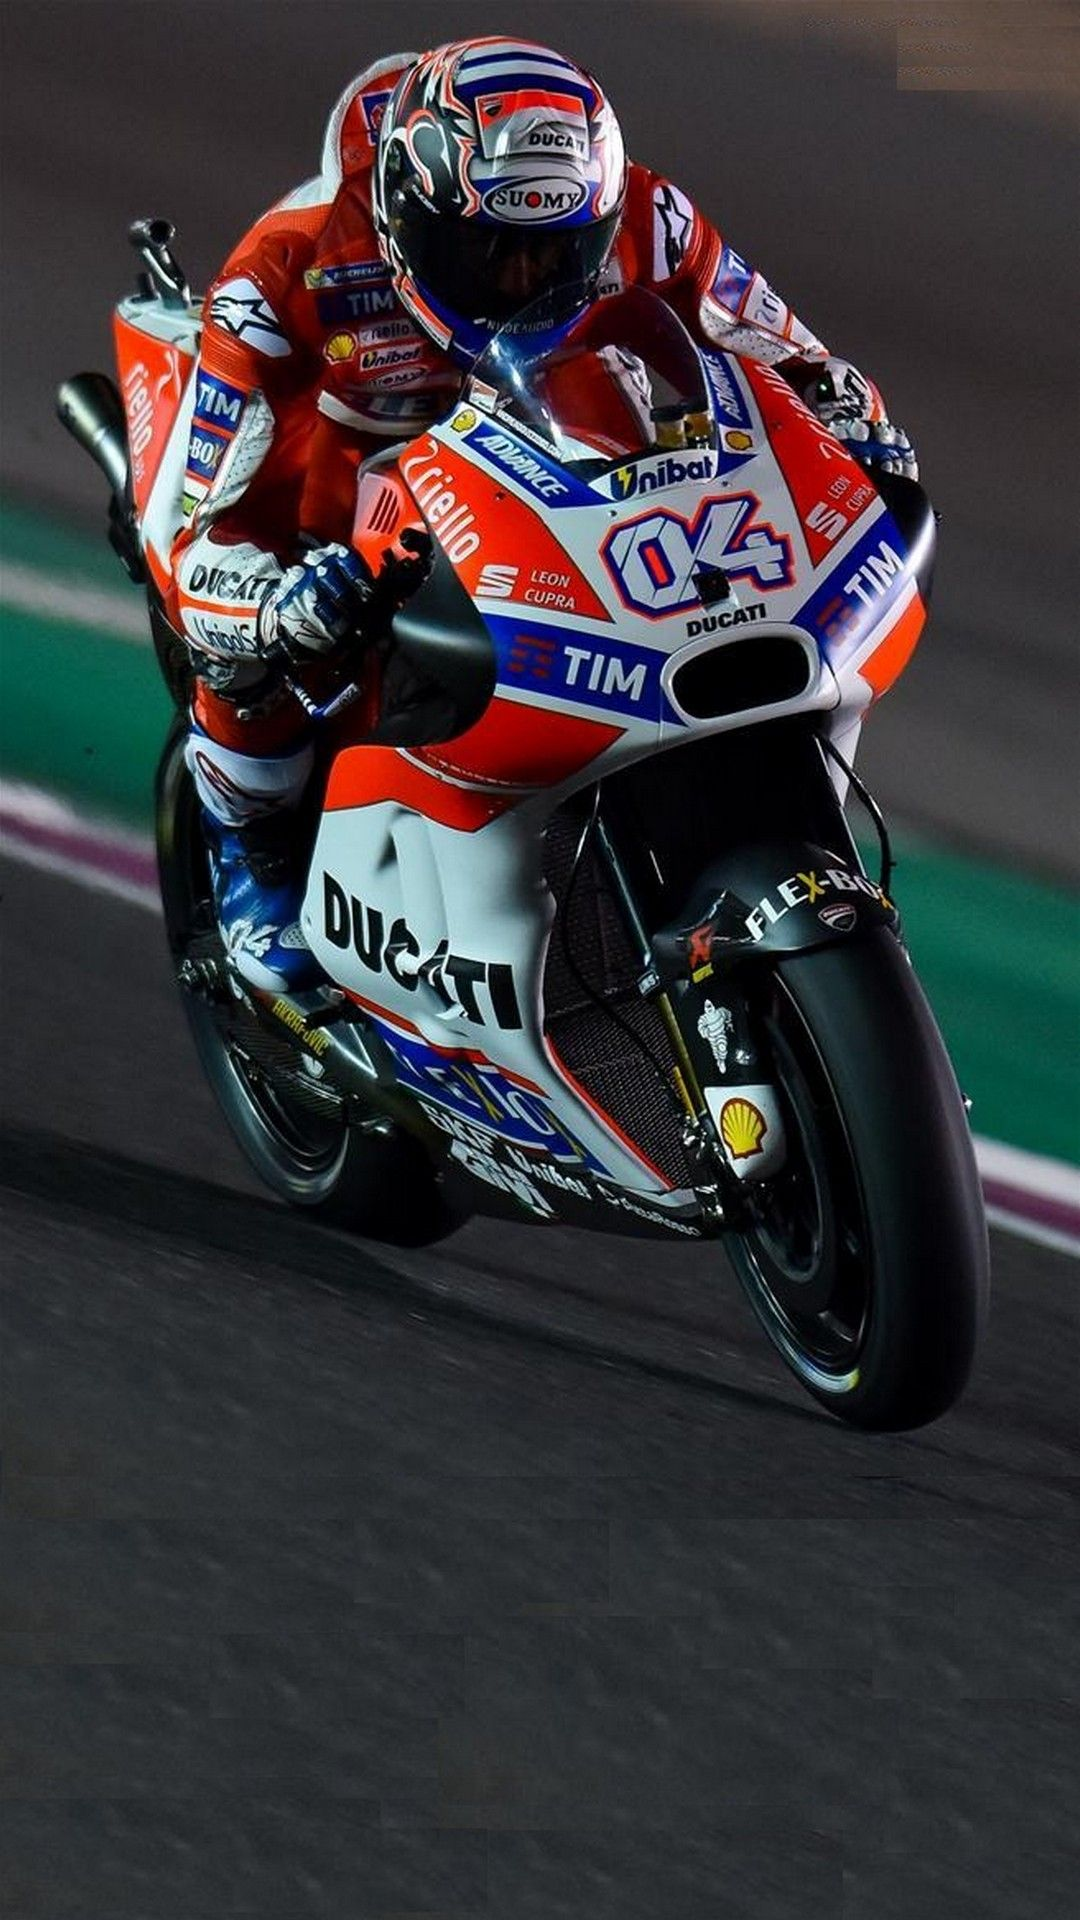 HD Andrea Dovizioso iPhone Wallpaper iPhoneWallpapers Iphone 1080x1920